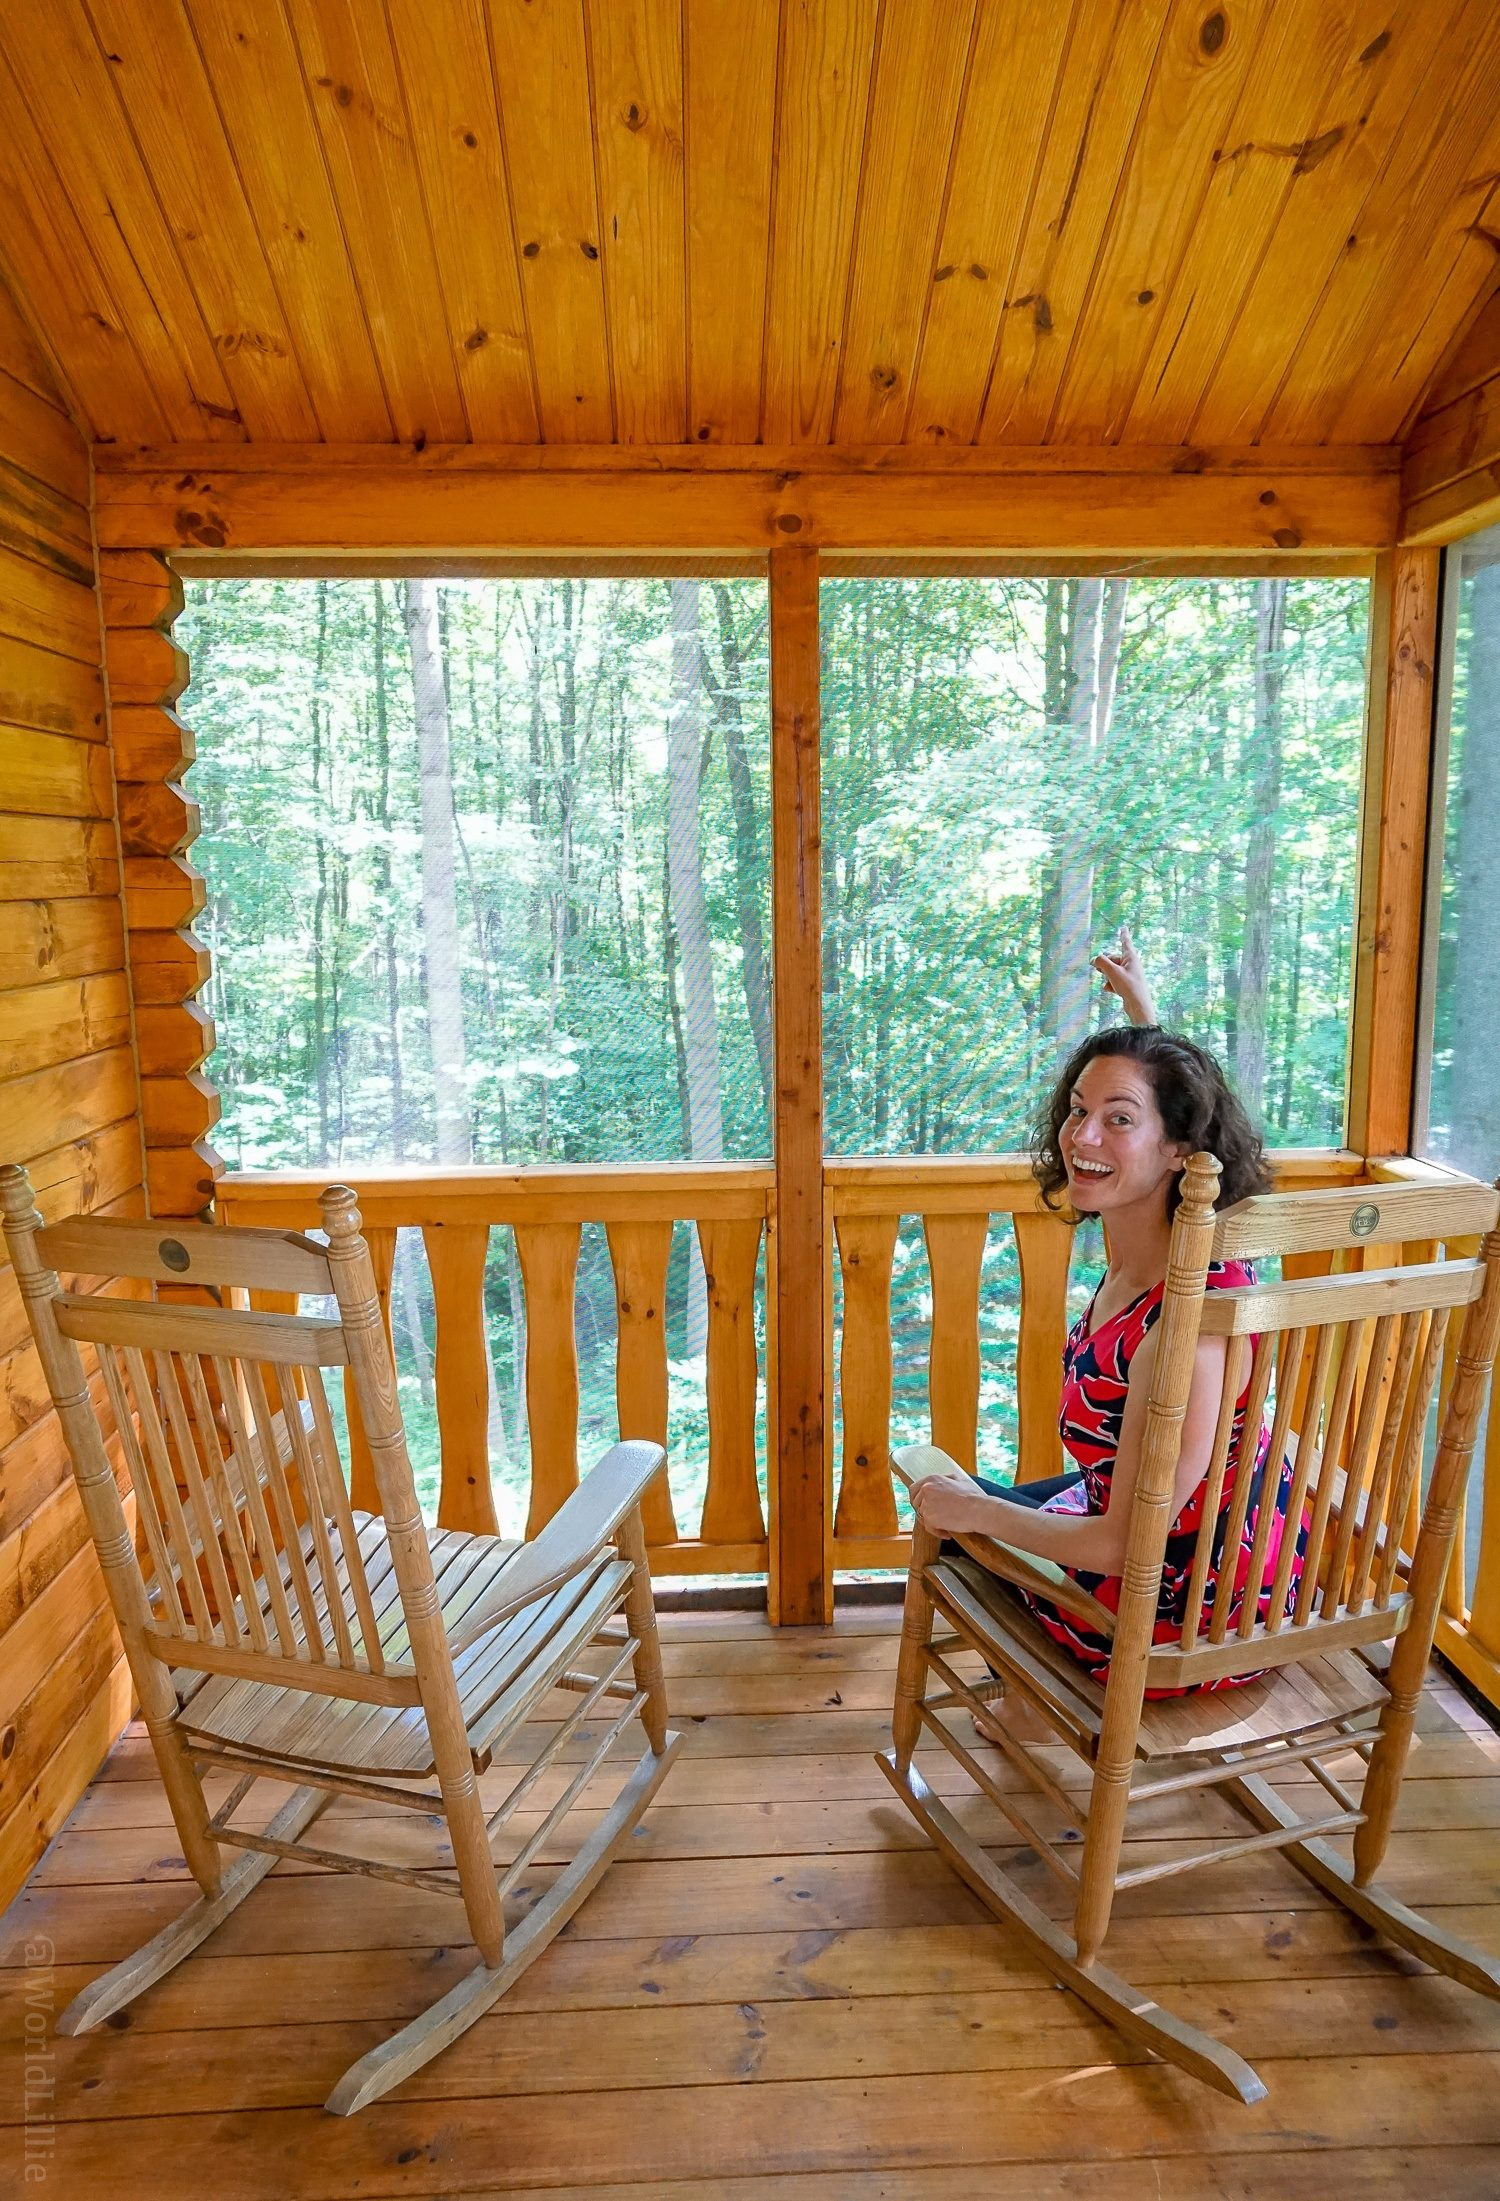 Fun places to go: Luxury cabins in the Laurel Highlands near Pittsburgh